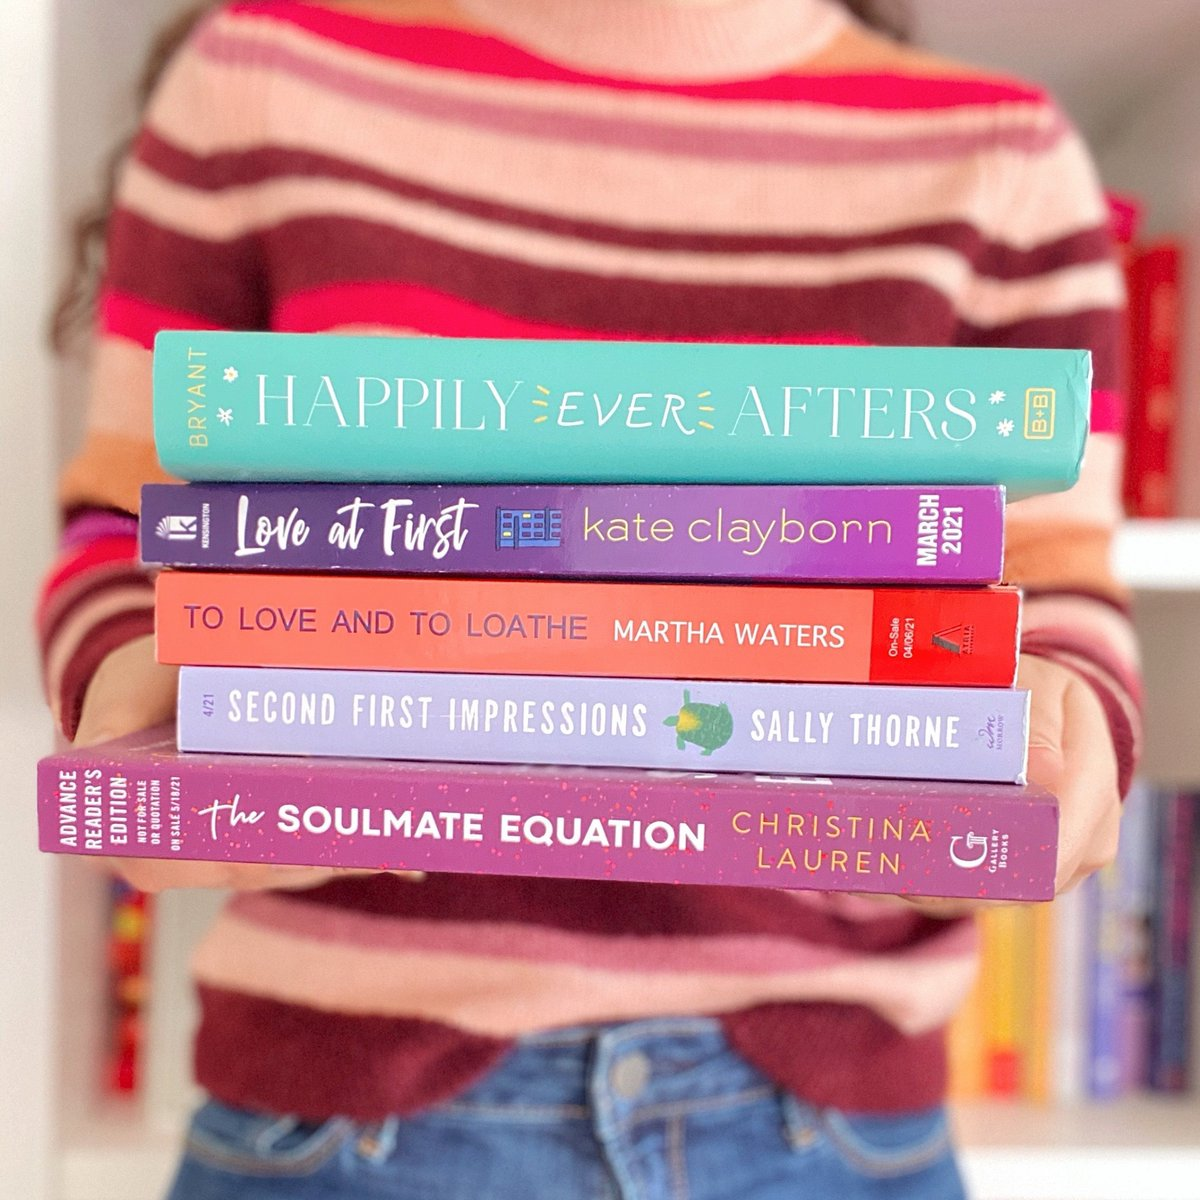 Head over to our Instagram for a chance to win this amazing stack of romance books in time for Valentines Day! 😍💕 #Giveaway 👉 bit.ly/3qXFDUT